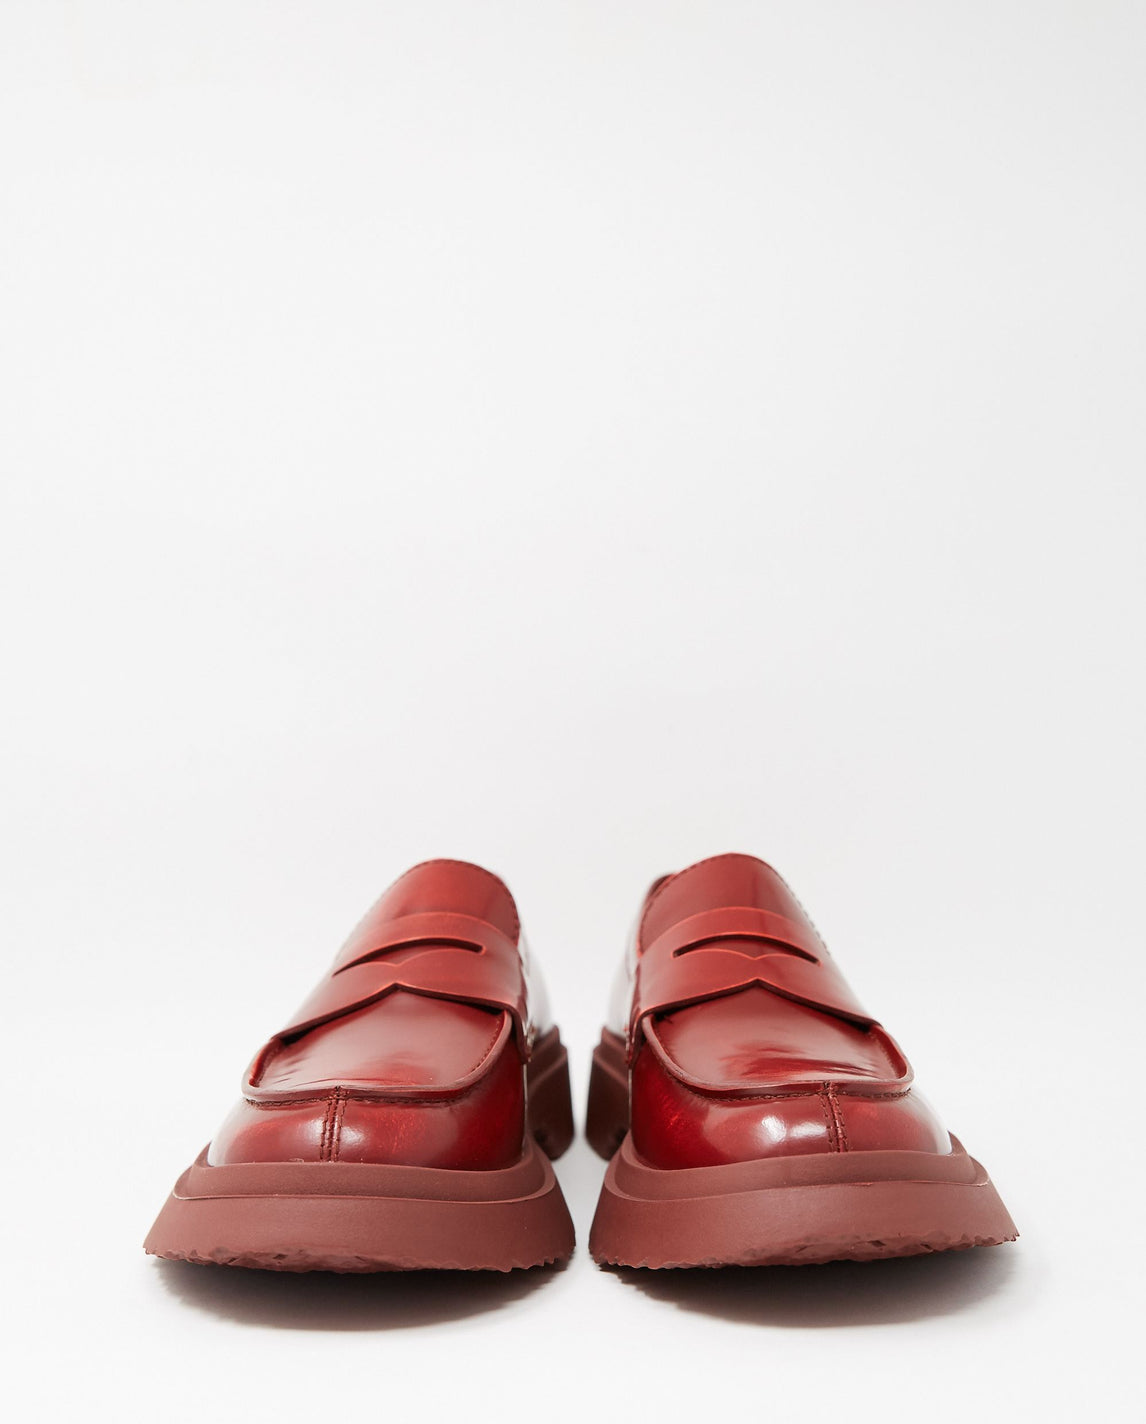 Blur Nebula-Carma Loafer - Red MENS CAMPERLAB